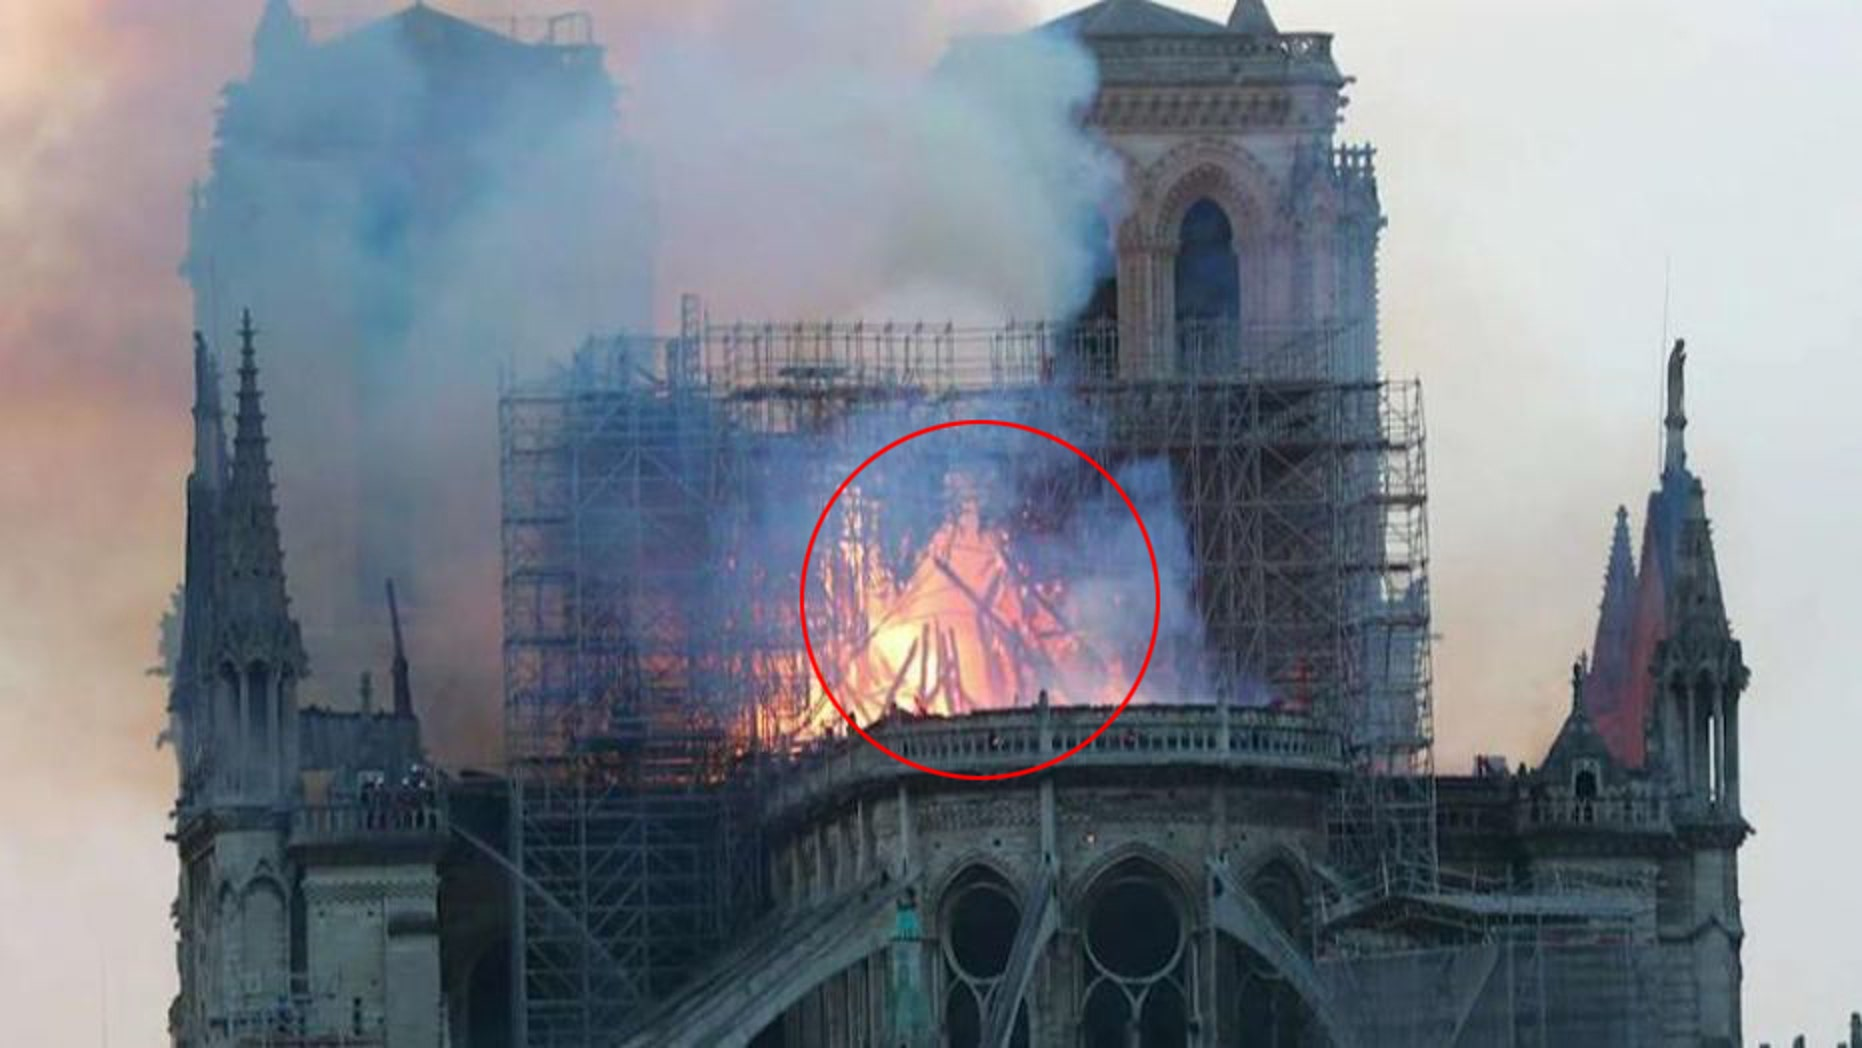 Some users on social media say they can see the outline of Jesus in the flames from the Notre Dame fire Monday evening.